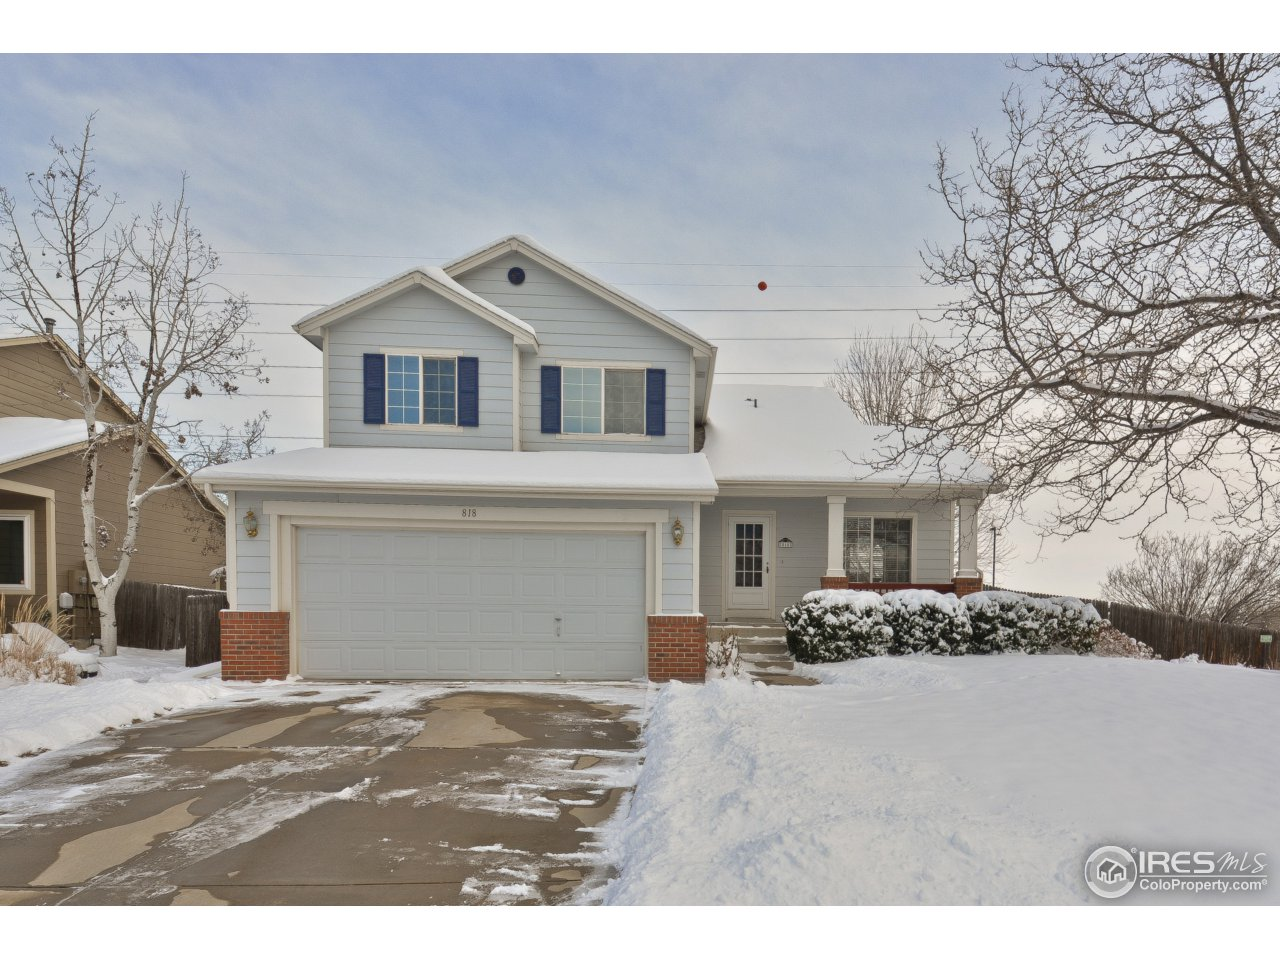 818 Bluegrass Dr, Longmont CO 80503